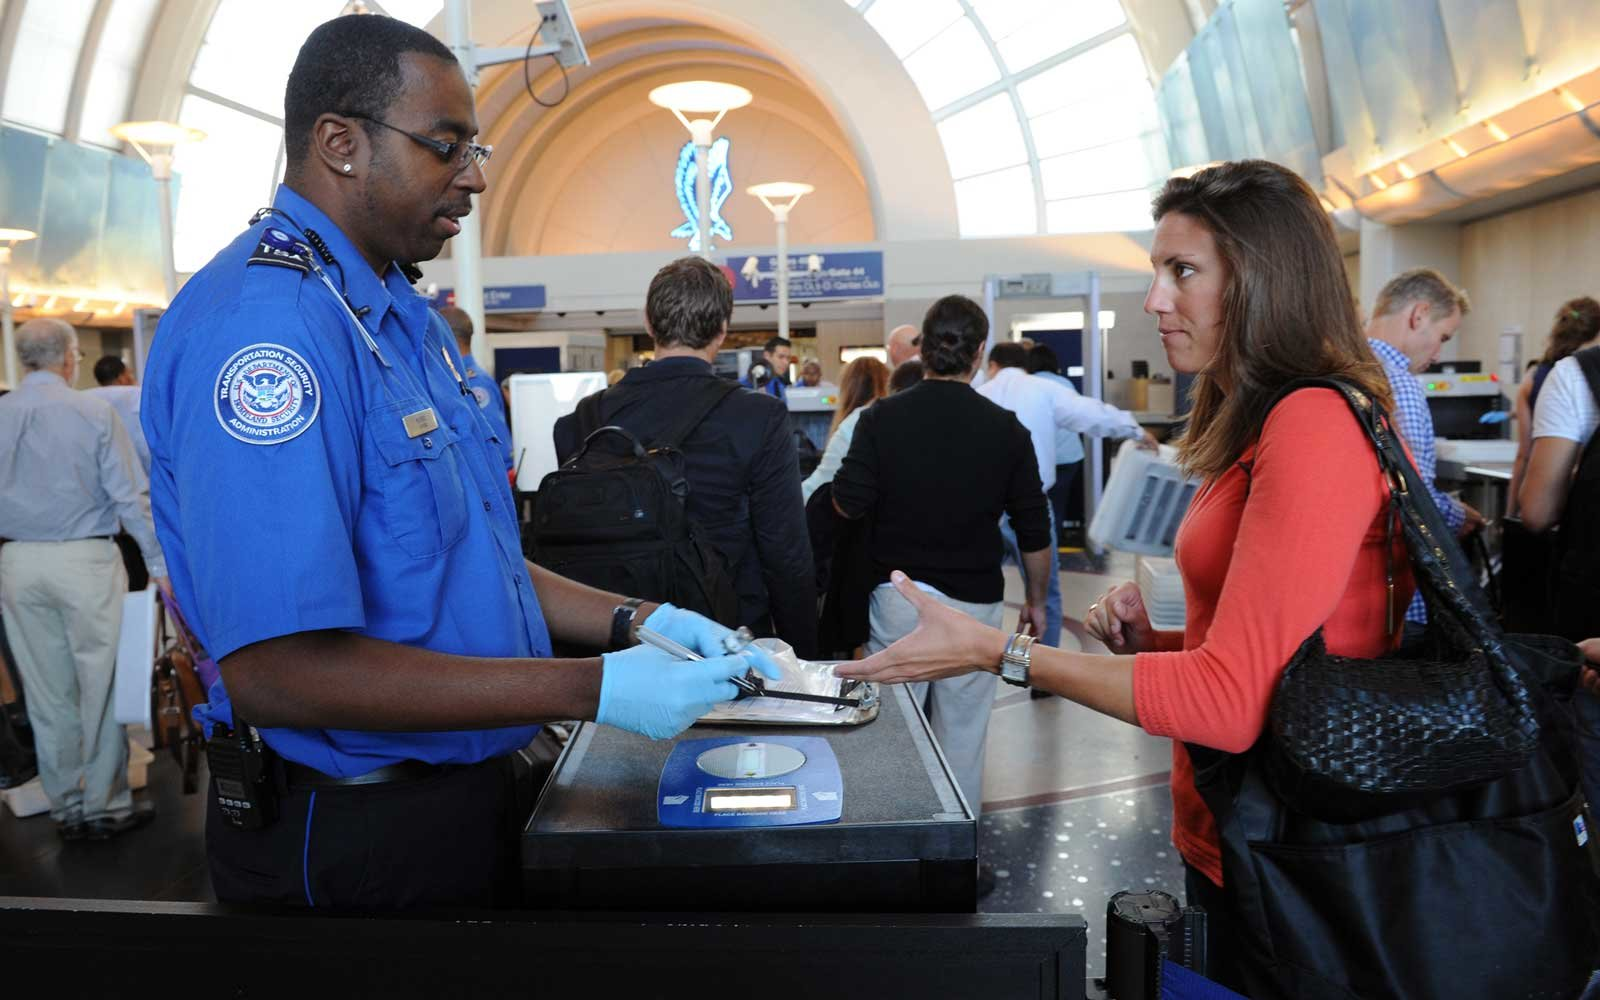 The Tsa Is Keeping A Secret List Of People Who Misbehave